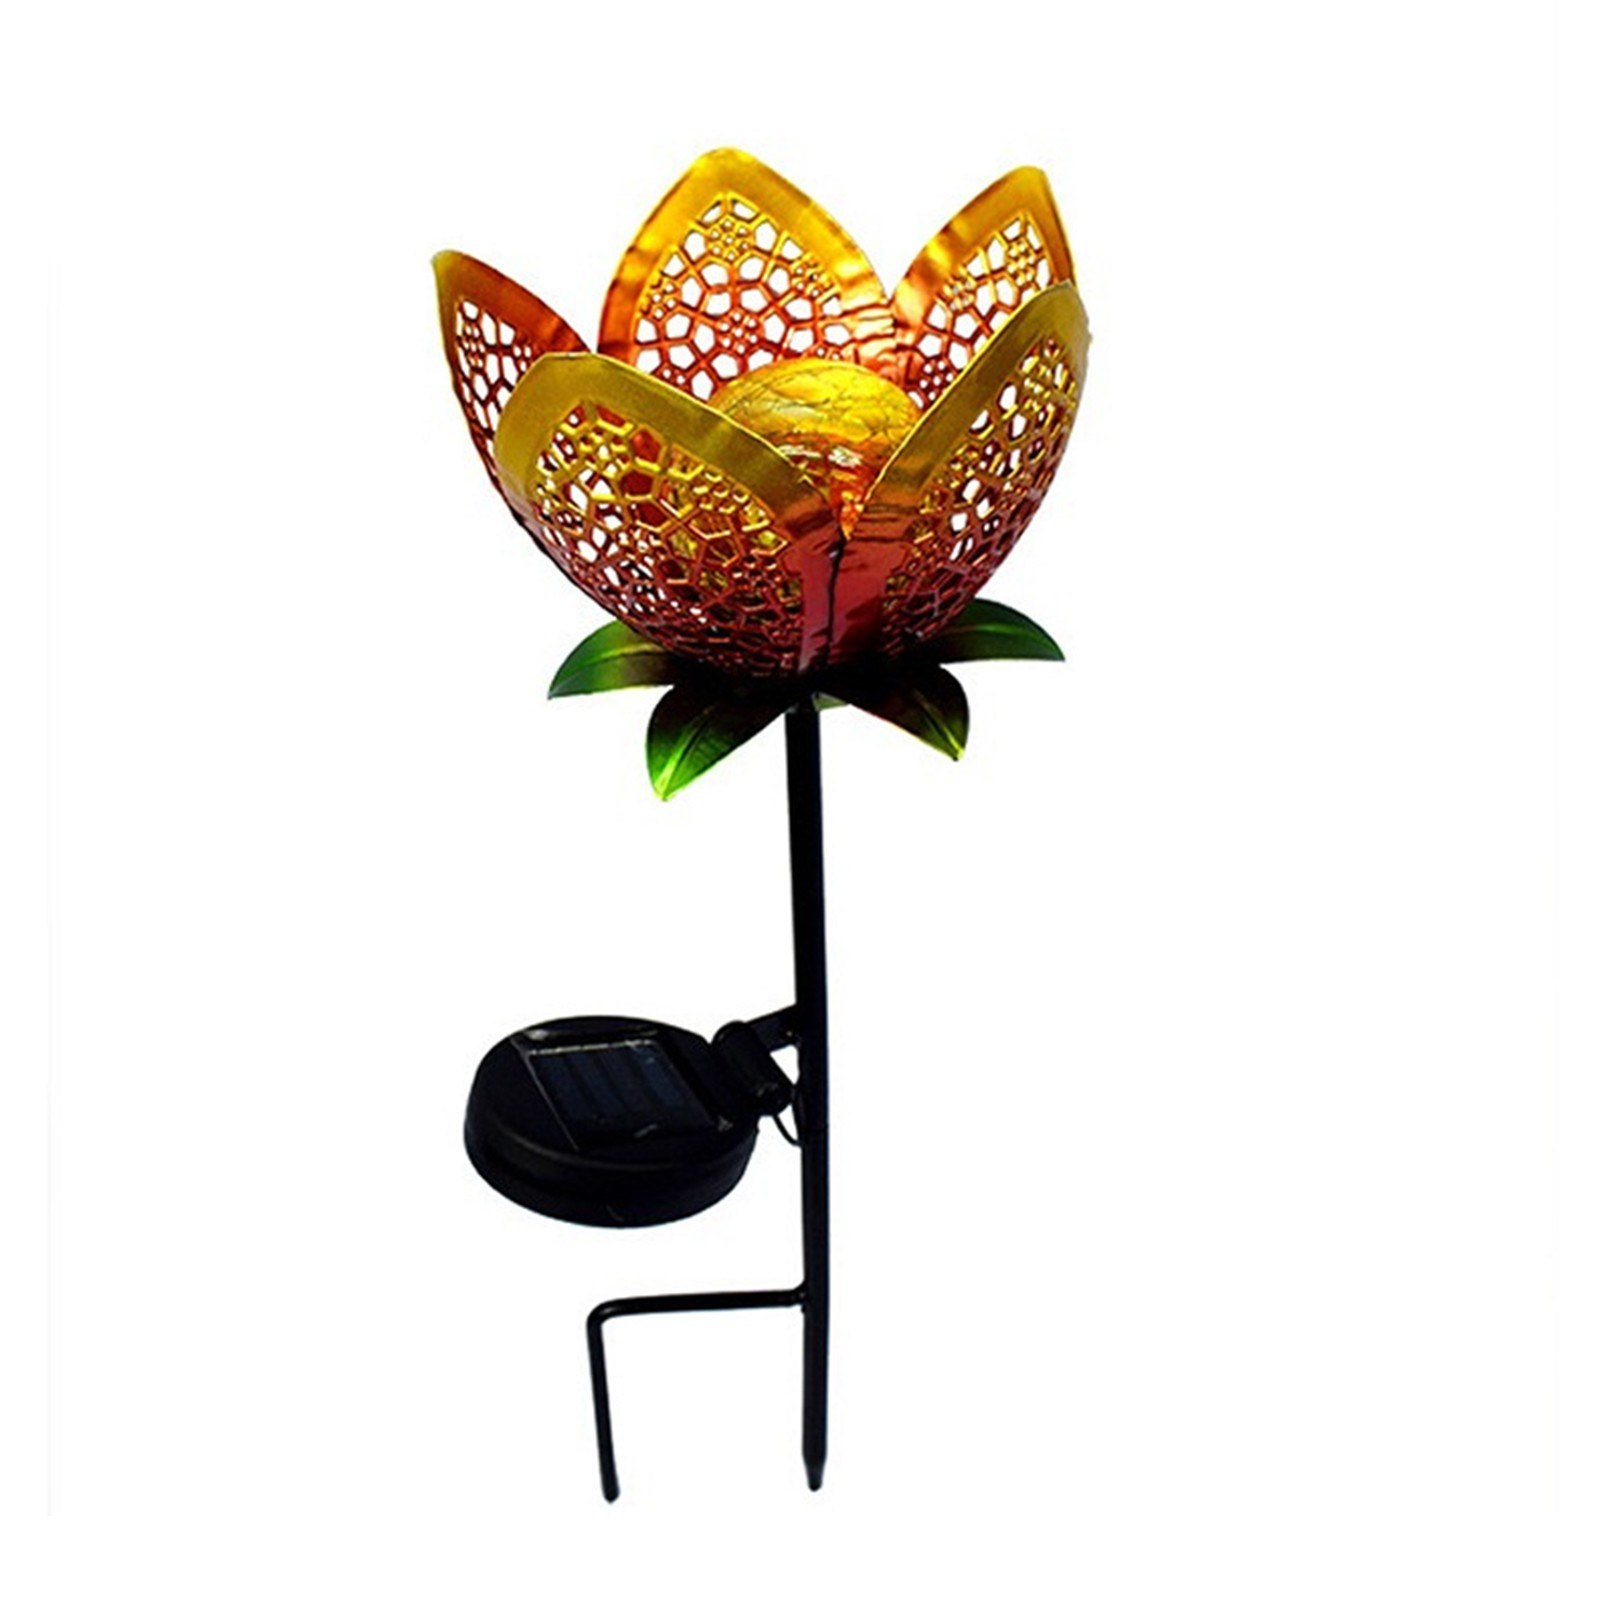 Best Led Solar Landscape Lights Flower Shaped Led Garden 1pcs Sale Online Shopping Cafago Com